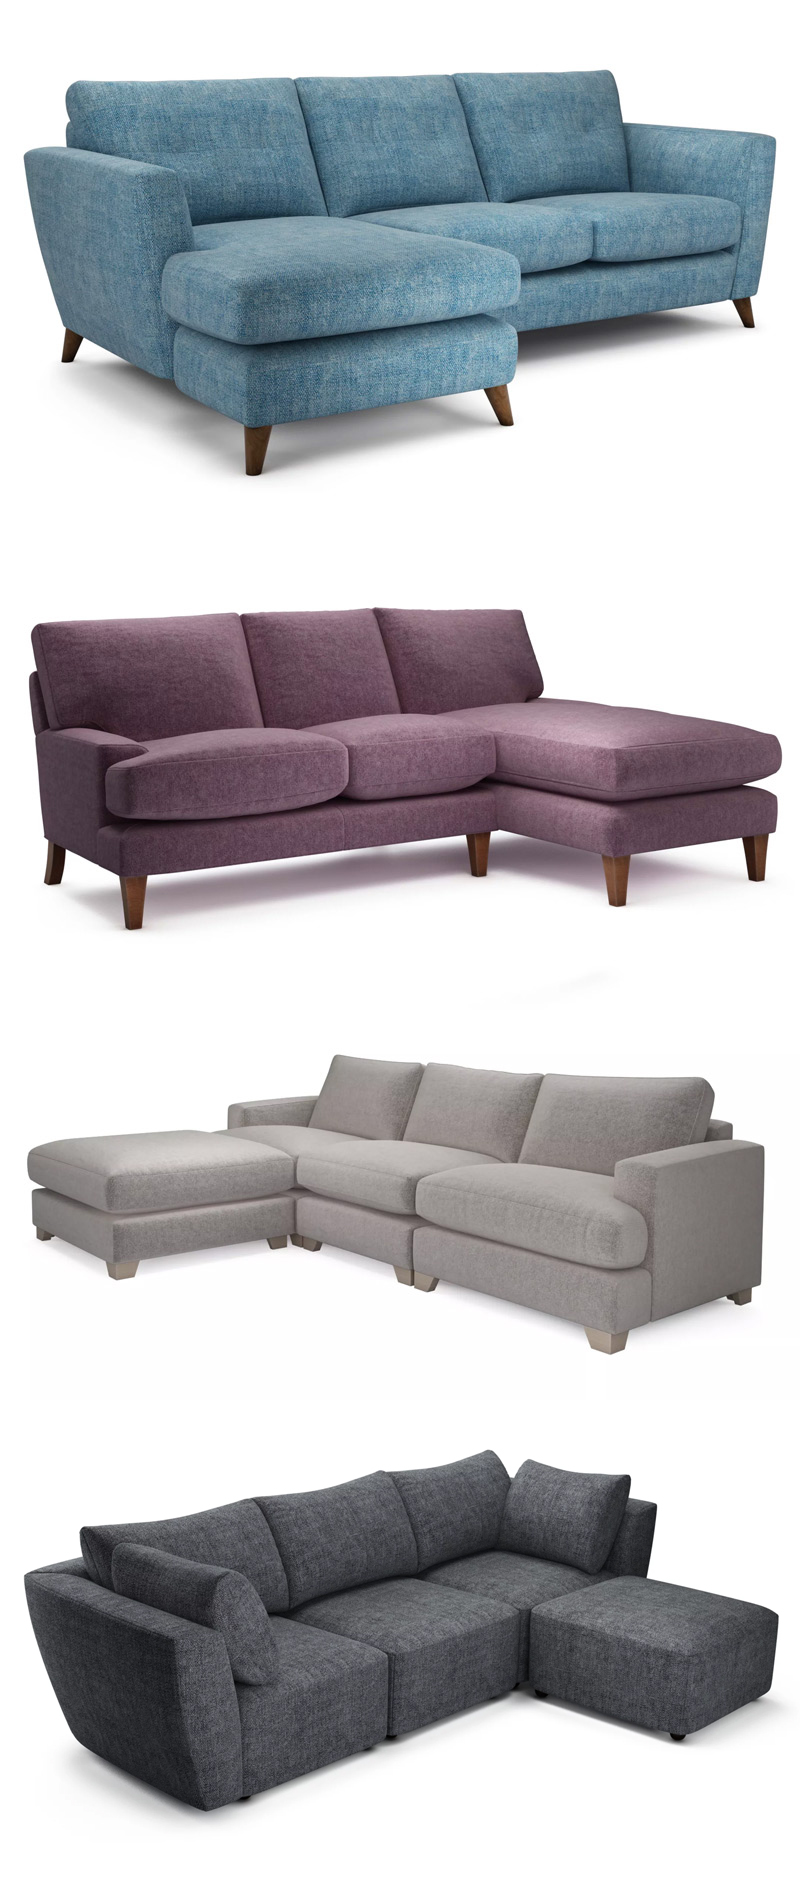 The Lounge Co. Chaise End Sofas